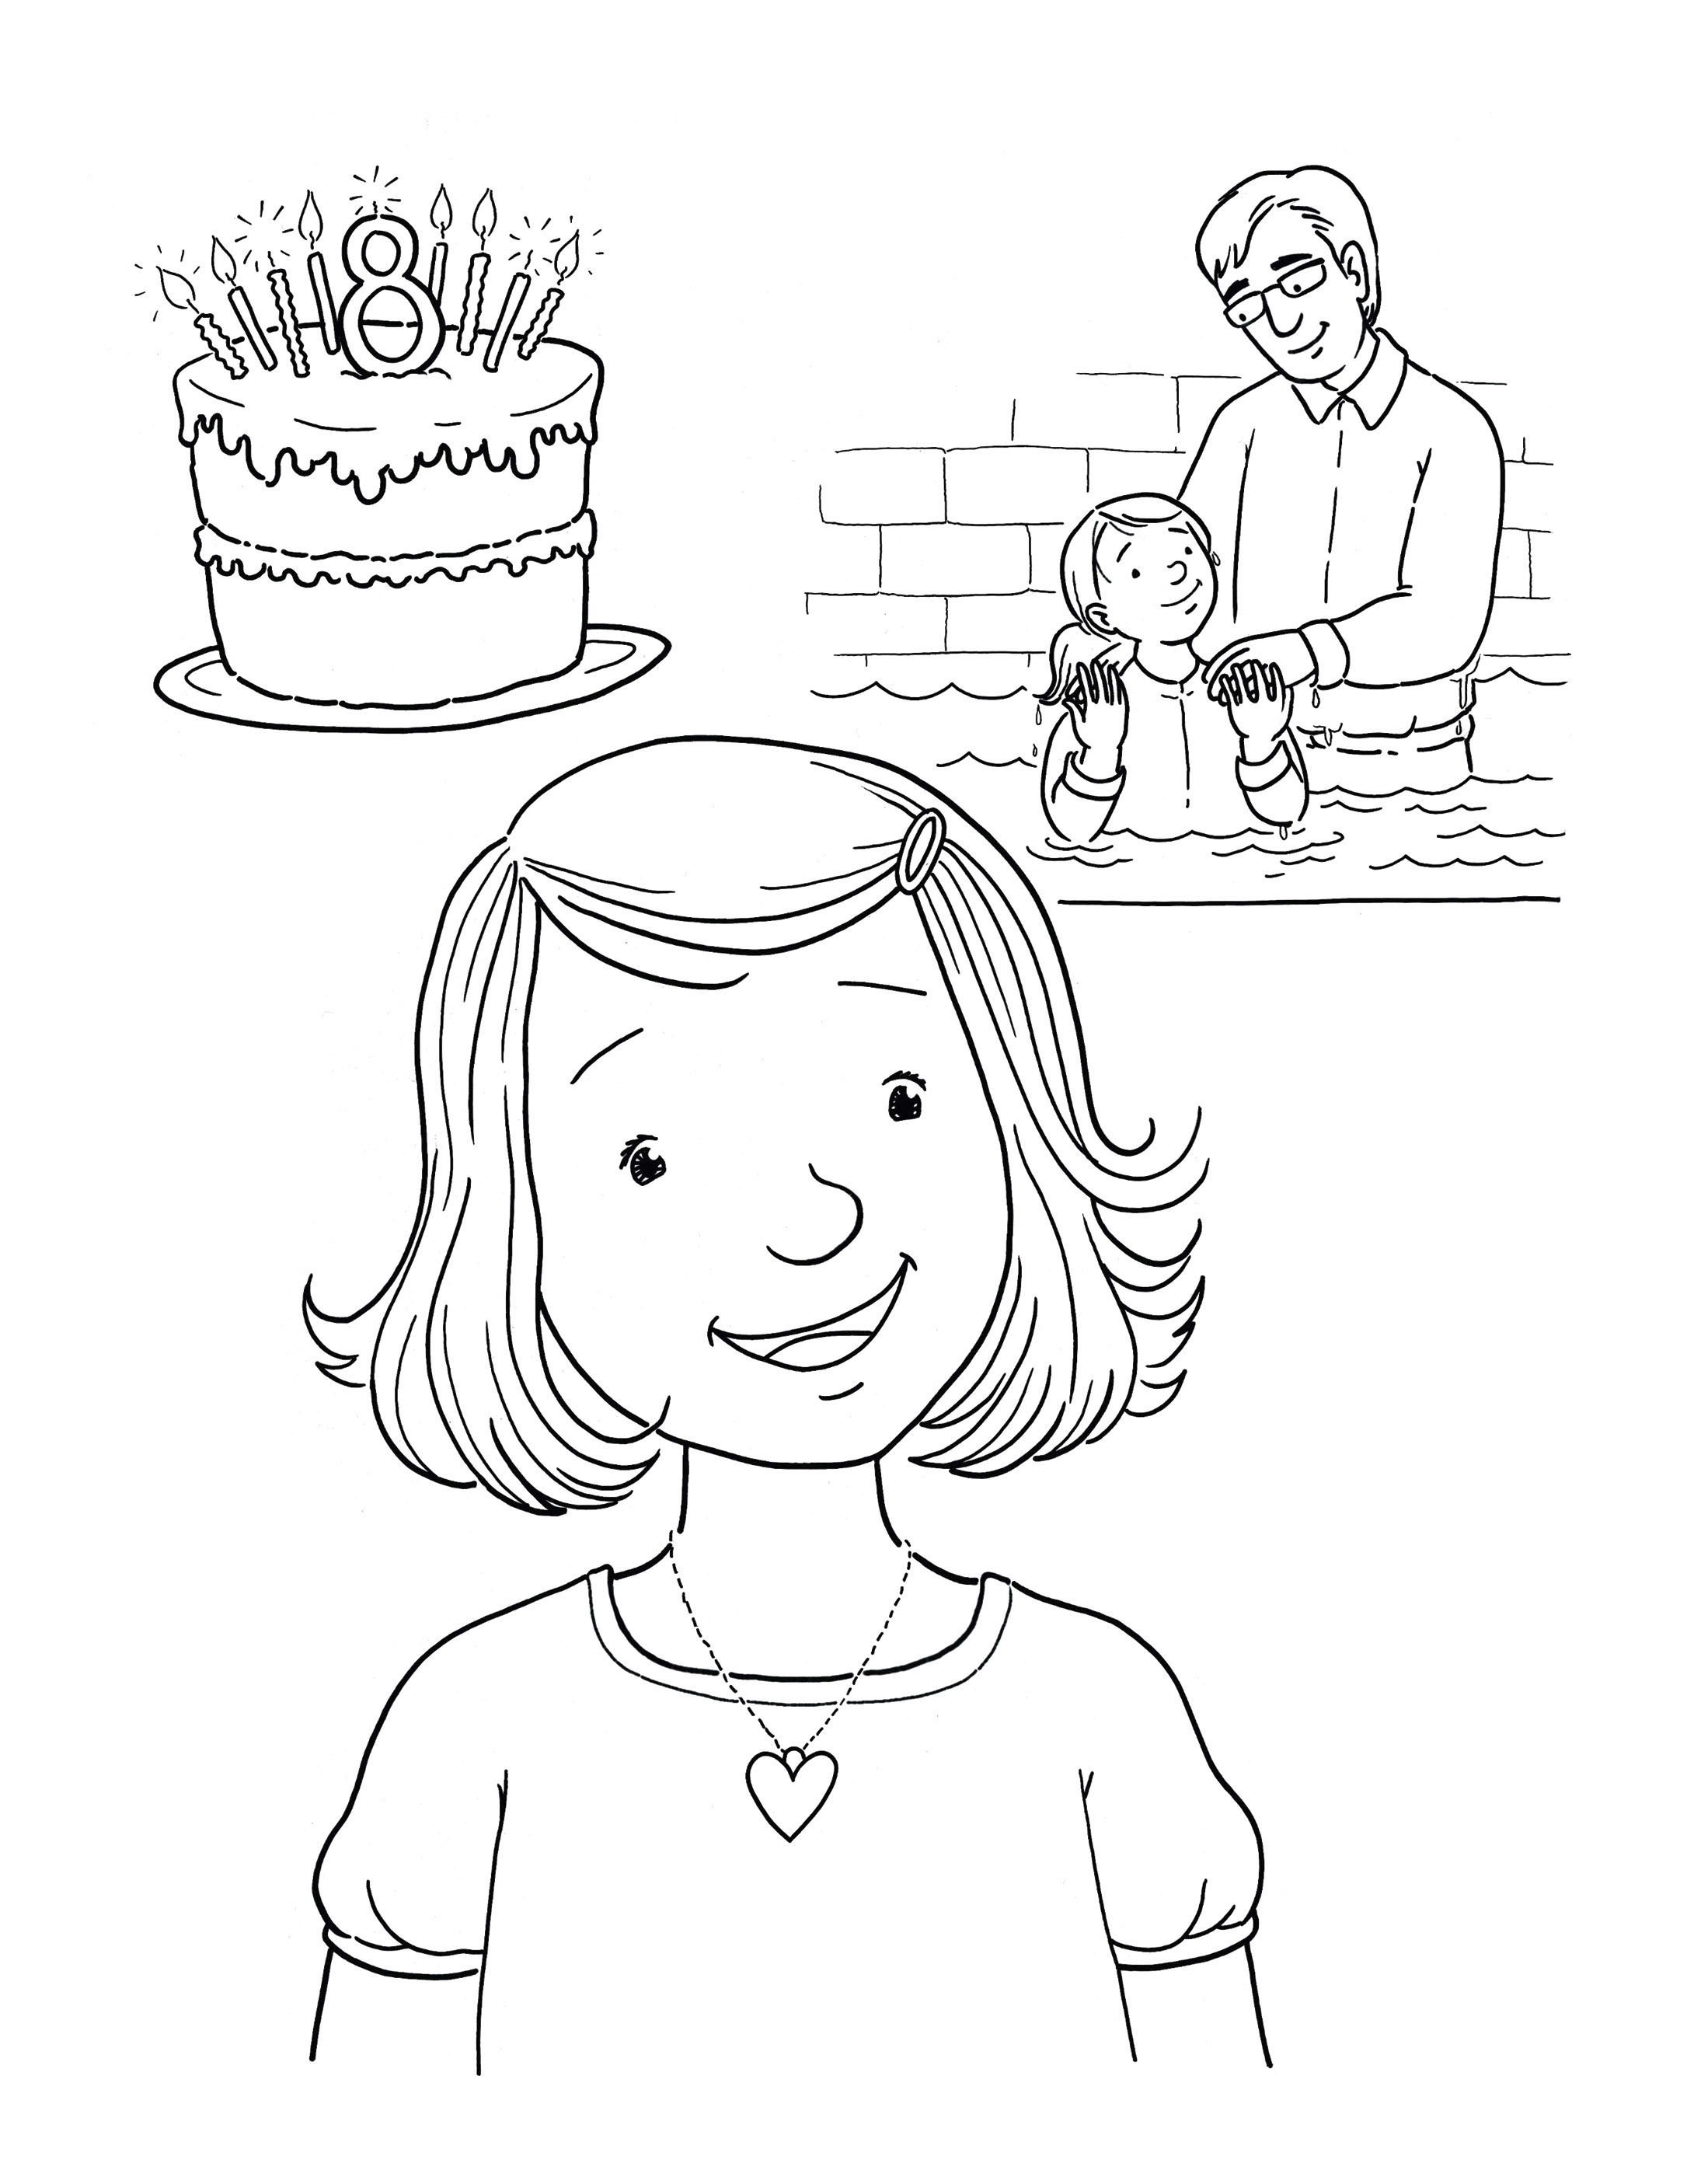 A girl thinks about her eighth birthday, her birthday cake, and being baptized.